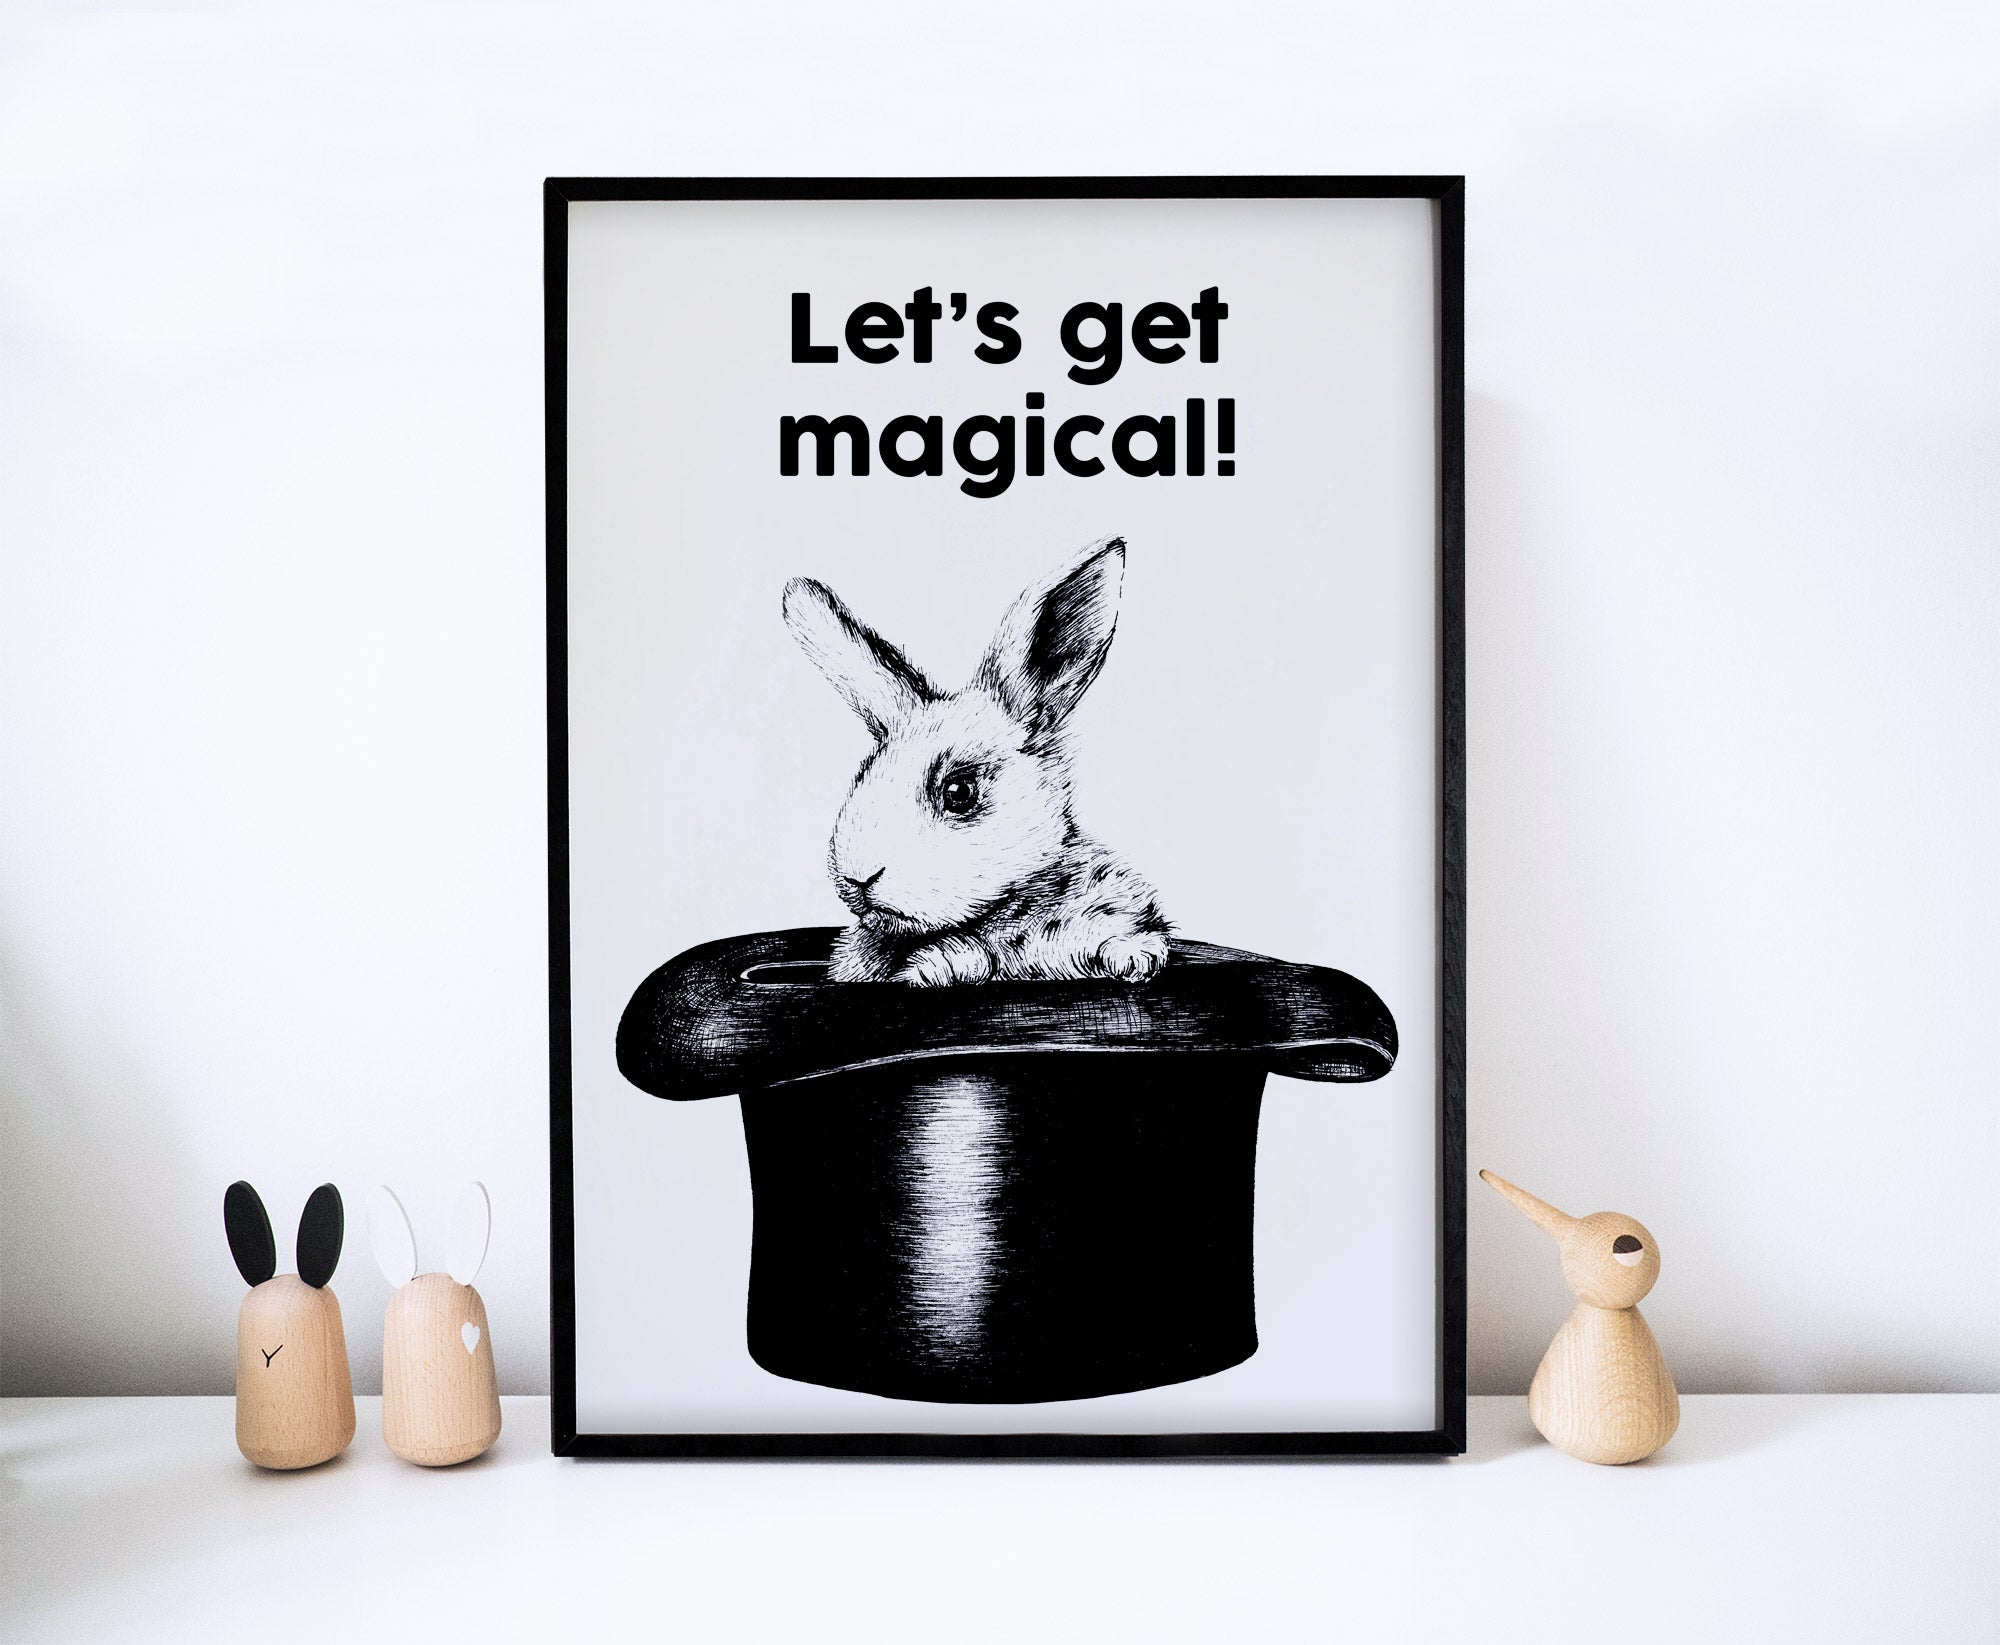 Let's Get Magical!